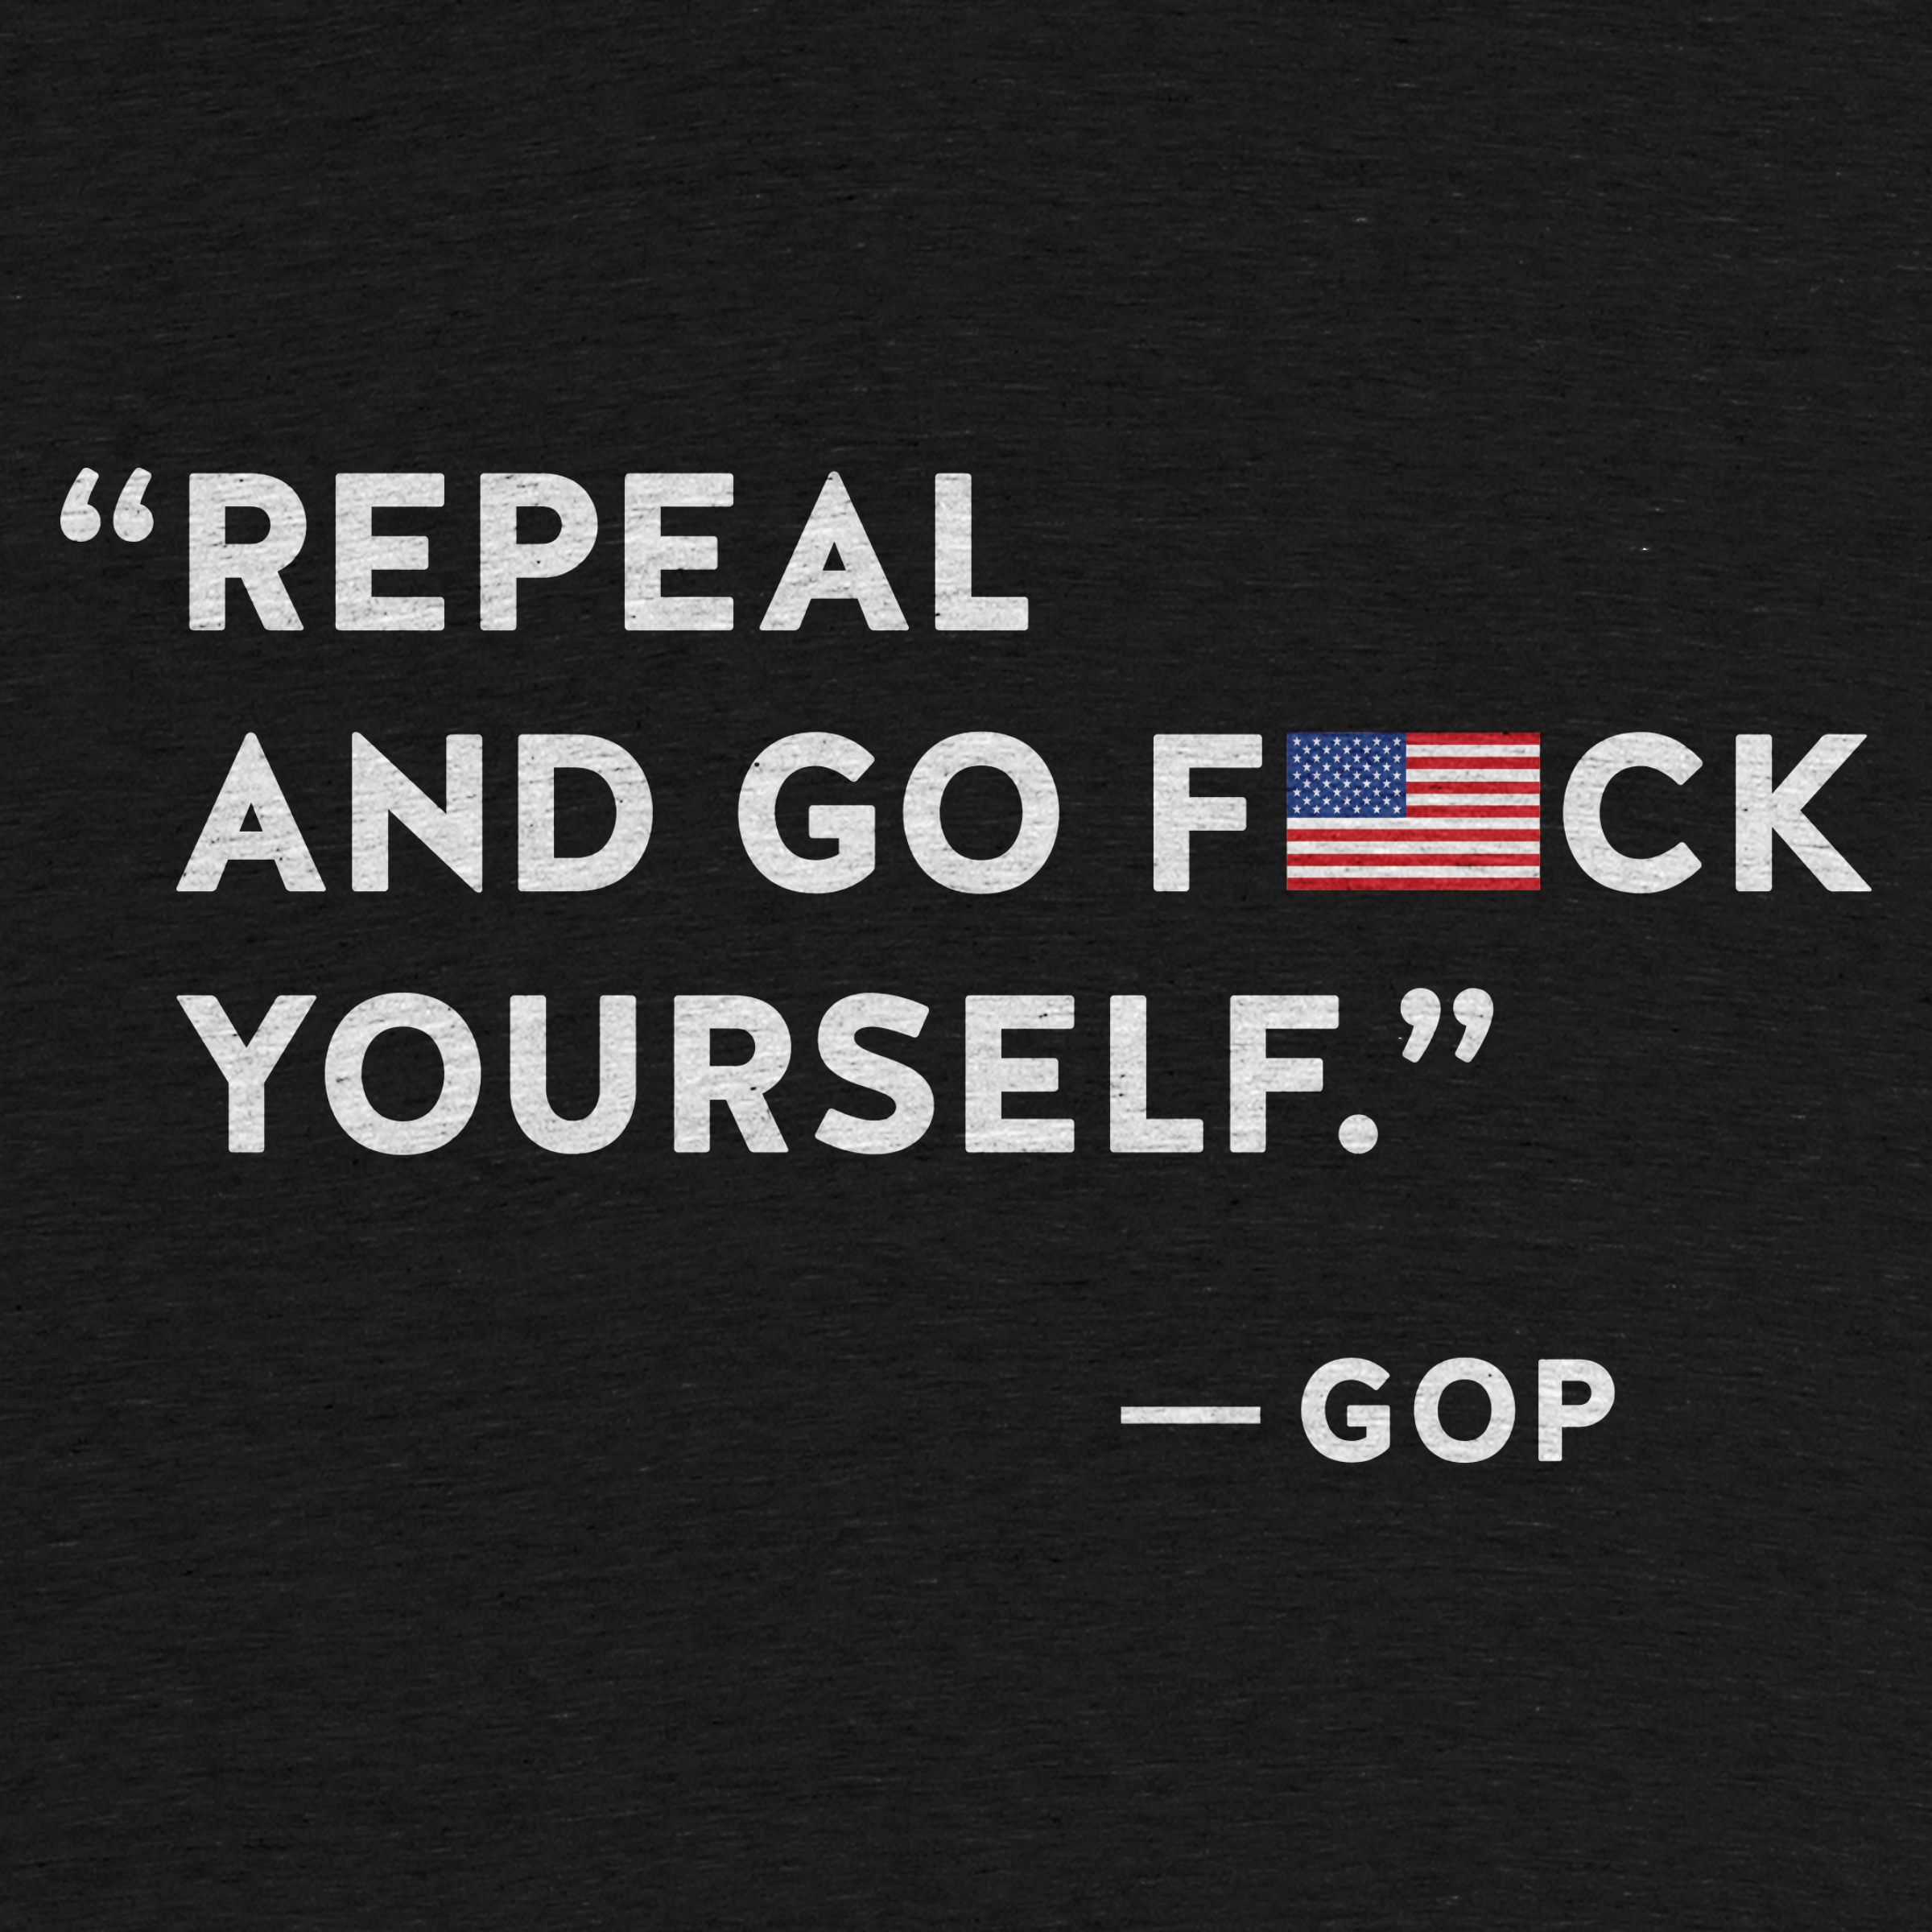 Repeal and Go F*ck Yourself